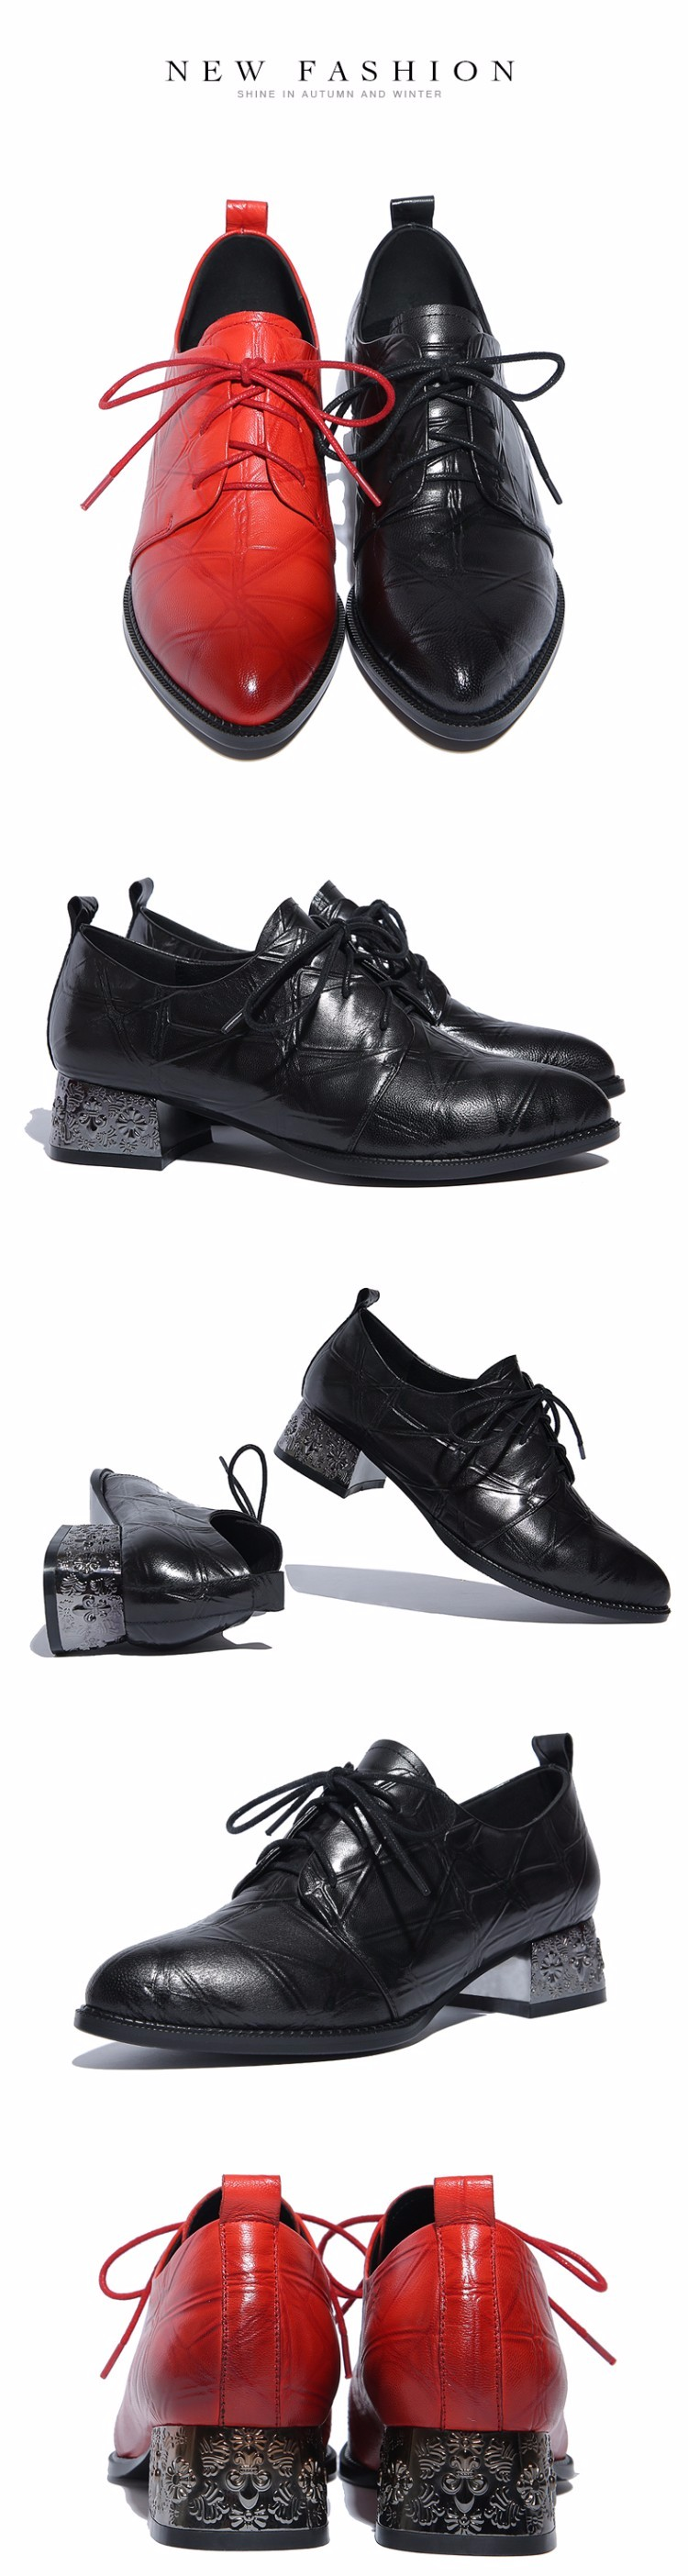 Genuine leather Flat Oxford Shoes pointed toe Woman Flats Lace-up 2017 Fashion British style Brogue Oxford women shoes moccasins